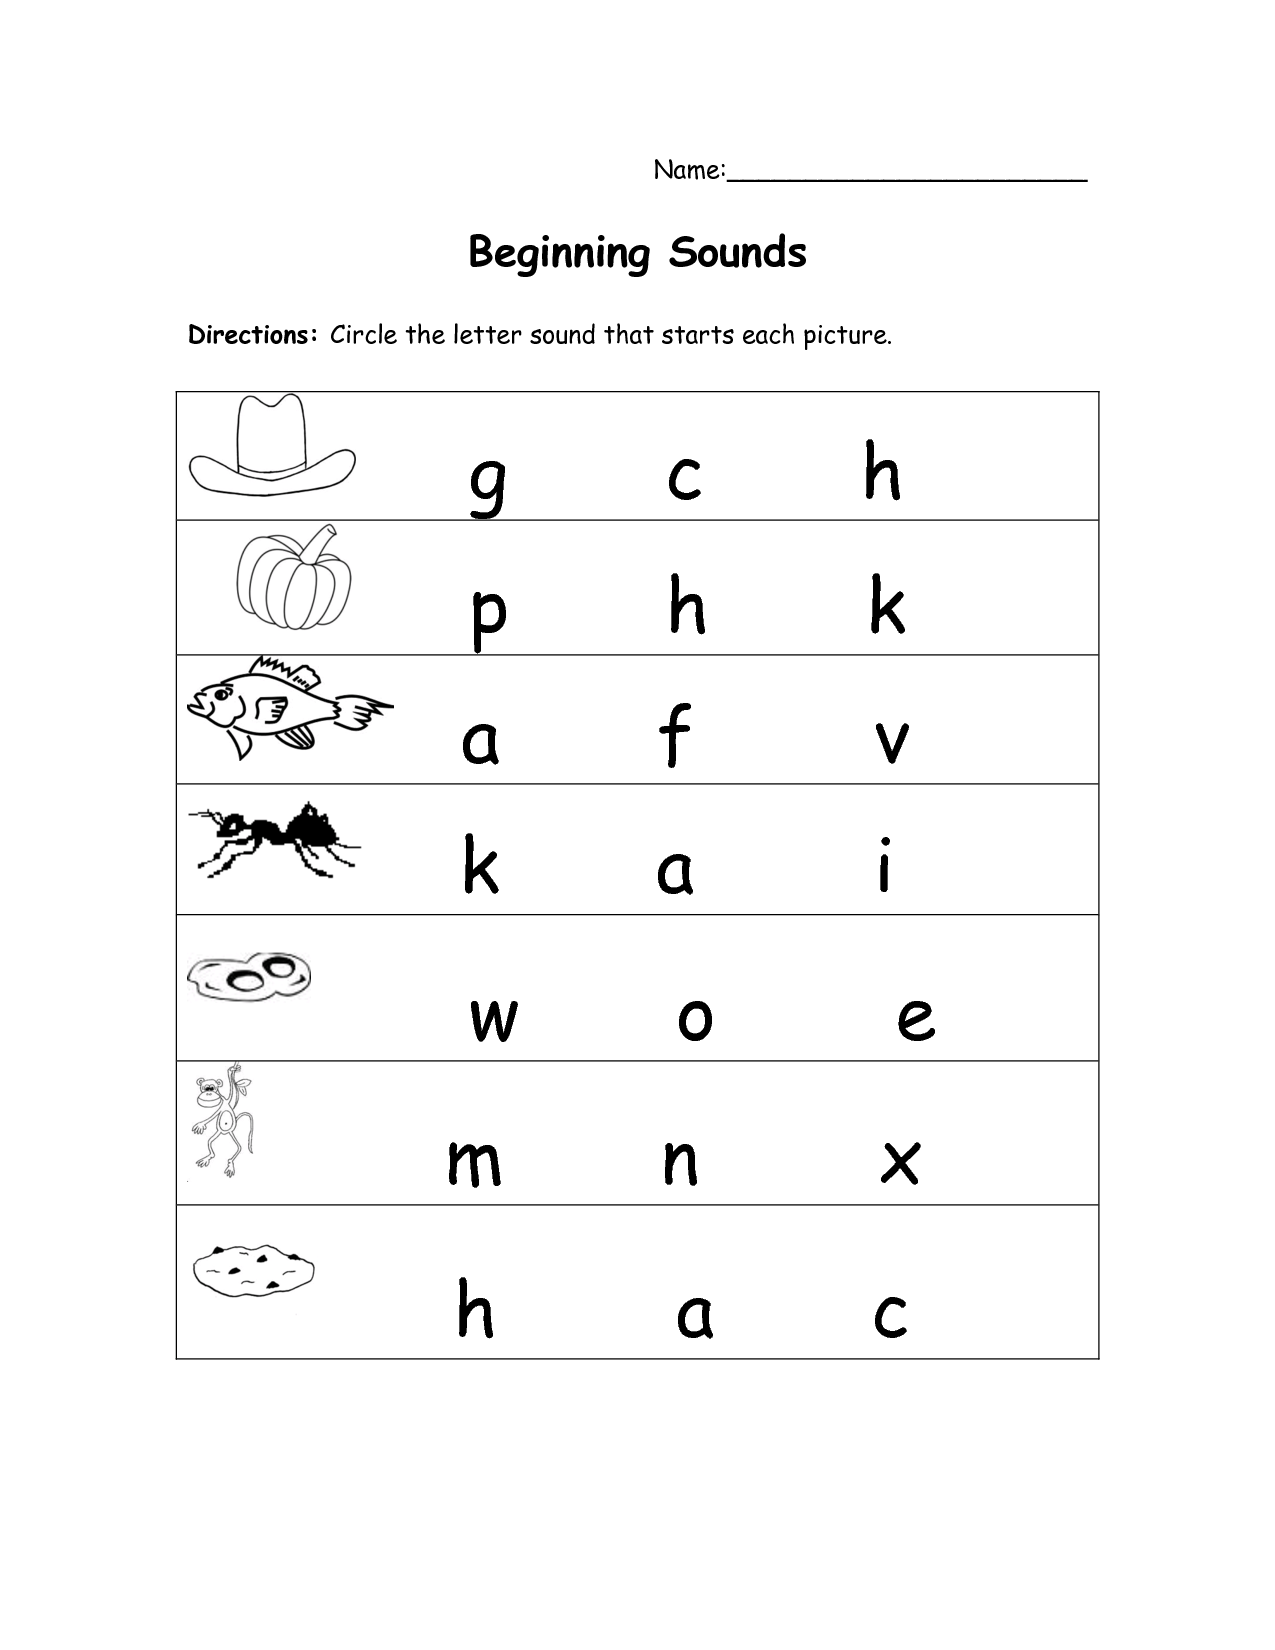 beginning sound worksheets for kindergarten Termolak – Sound Worksheets